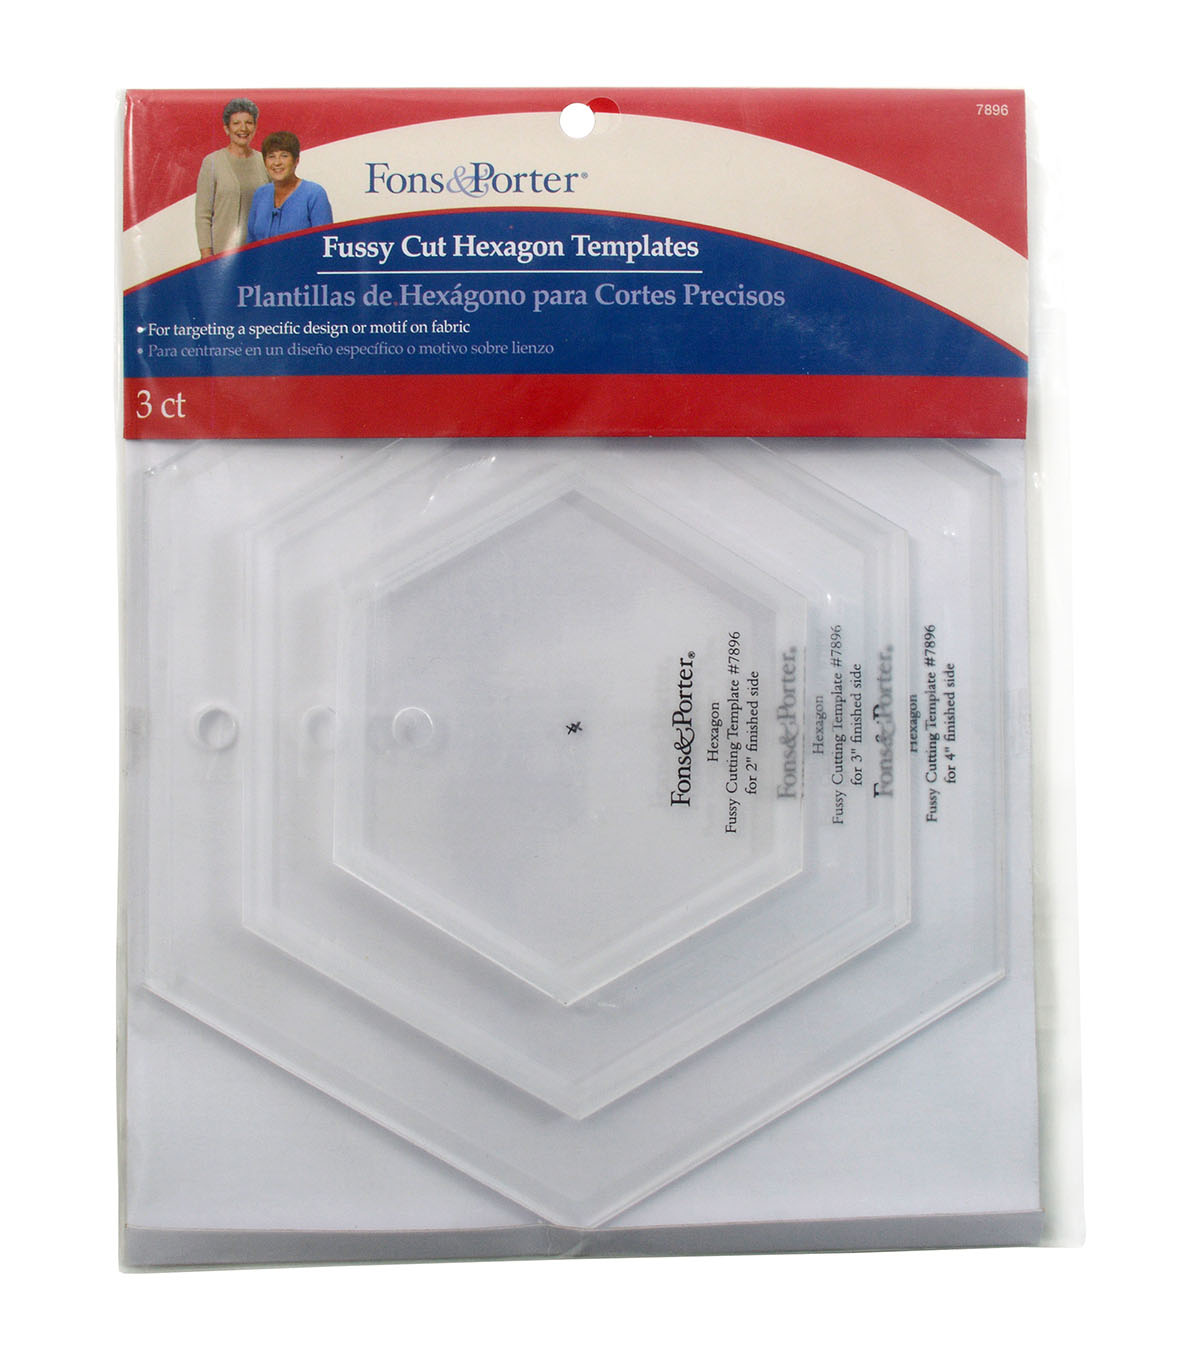 Fussy Cut Hexagon Templates